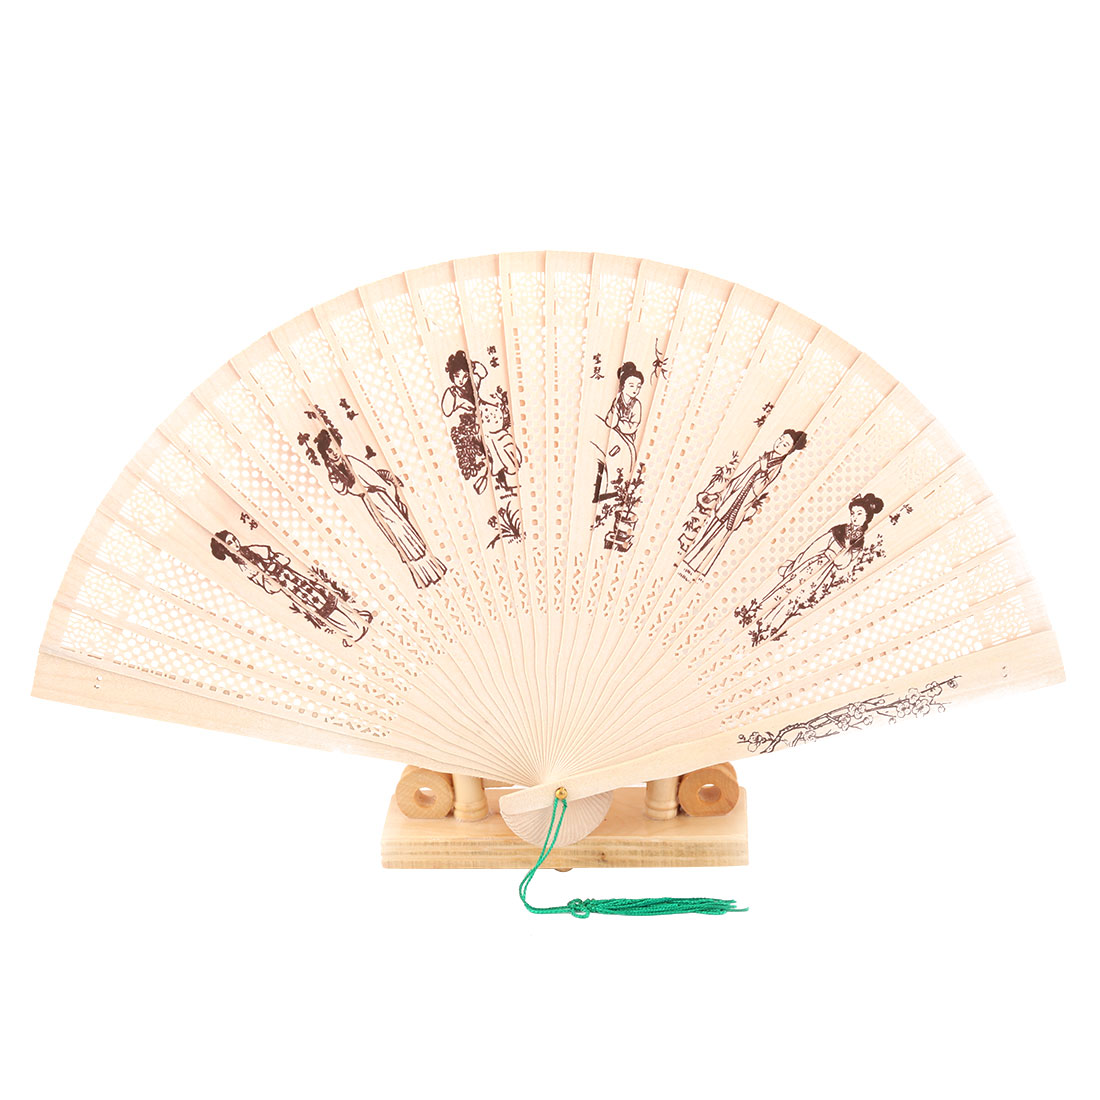 Bamboo Women Pattern Tassel Decor Folding Hand Fan Display Holder Beige 2 in 1